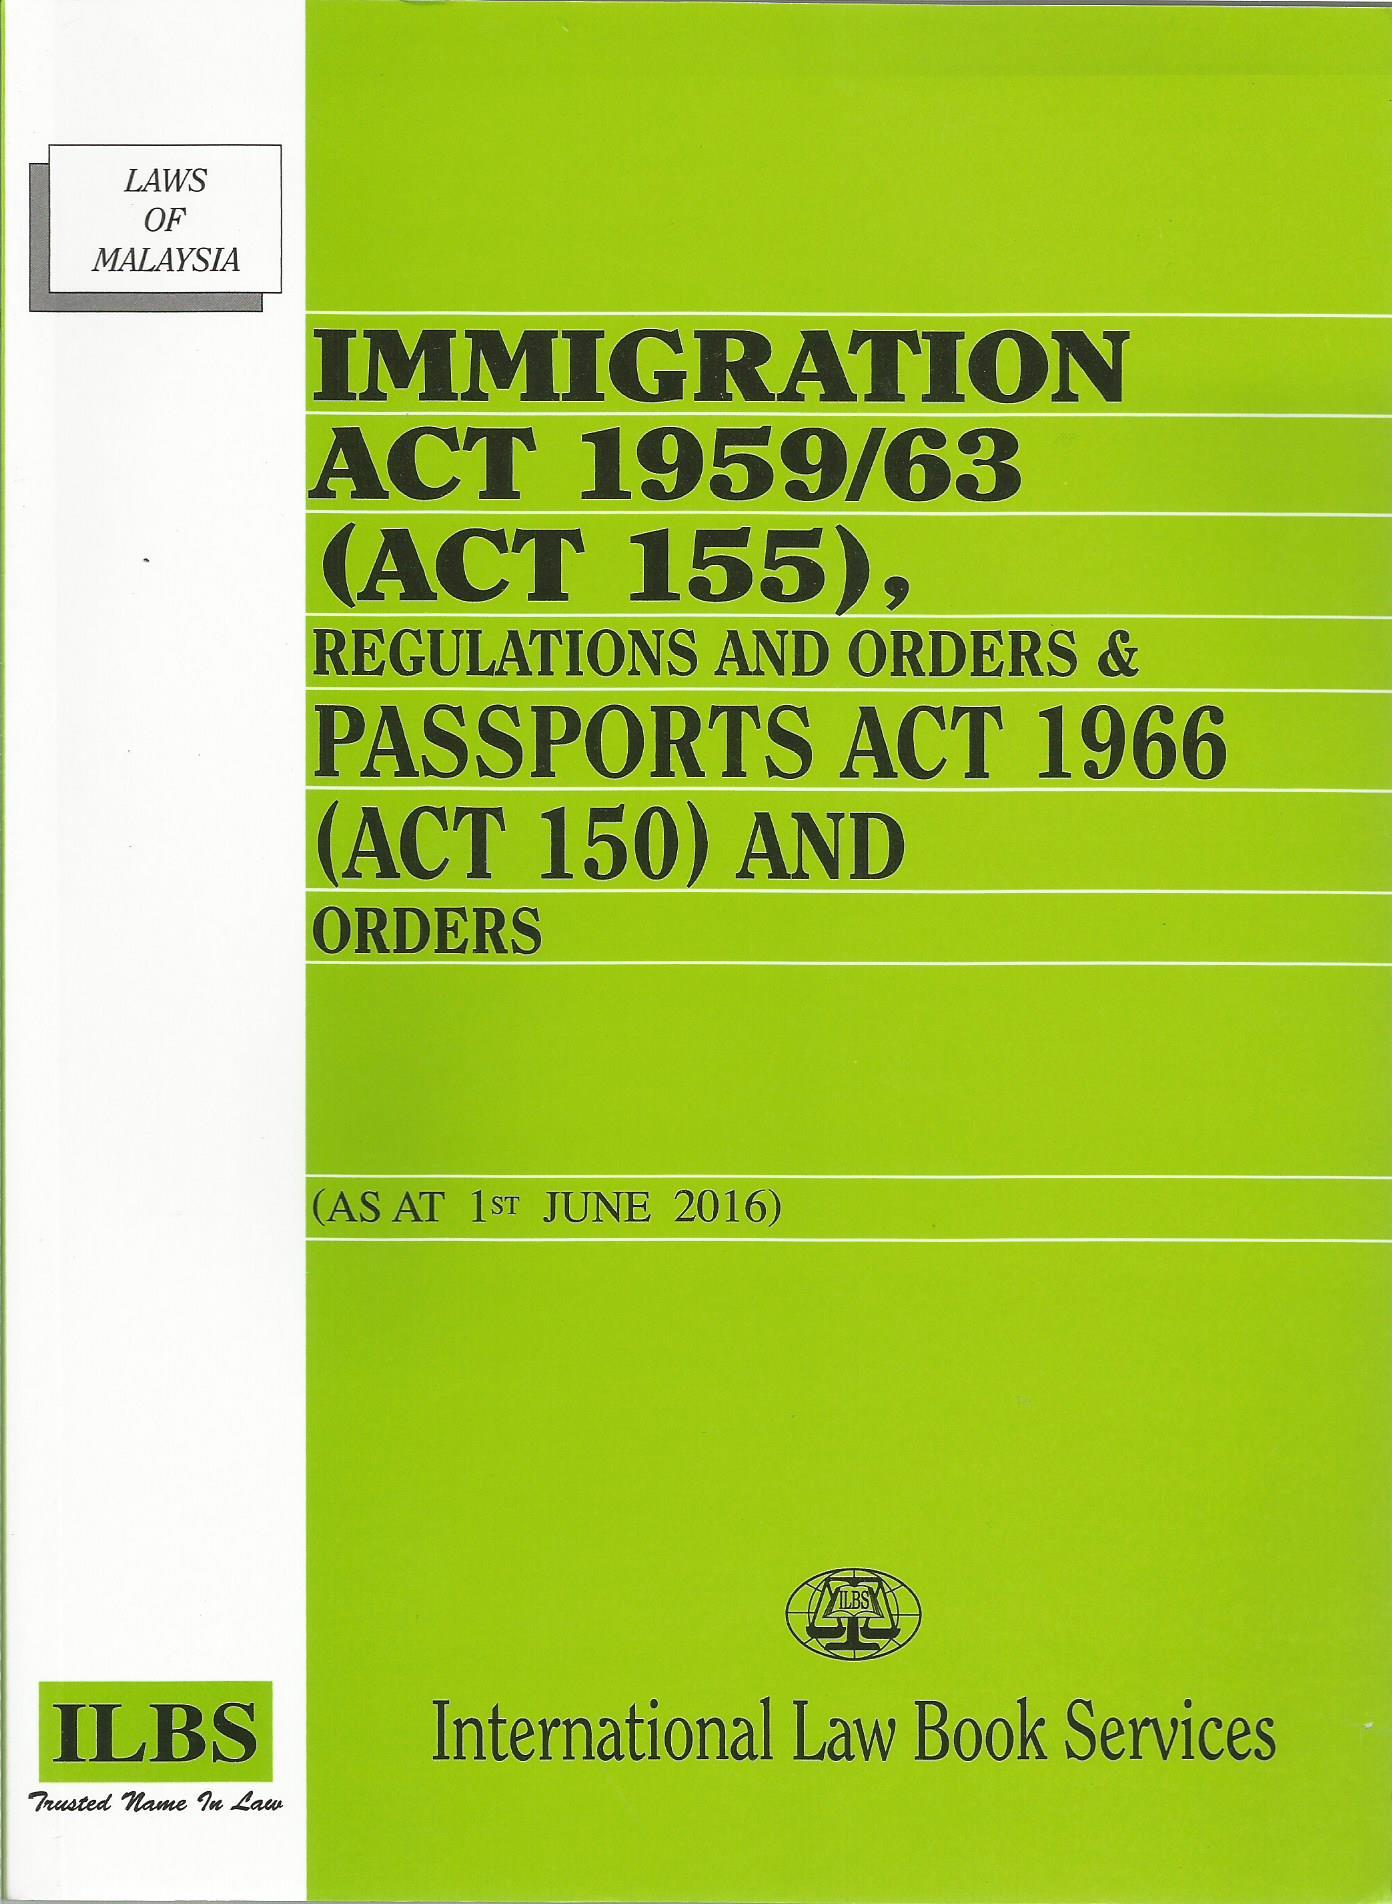 immigration act rm25 0.40001.jpg